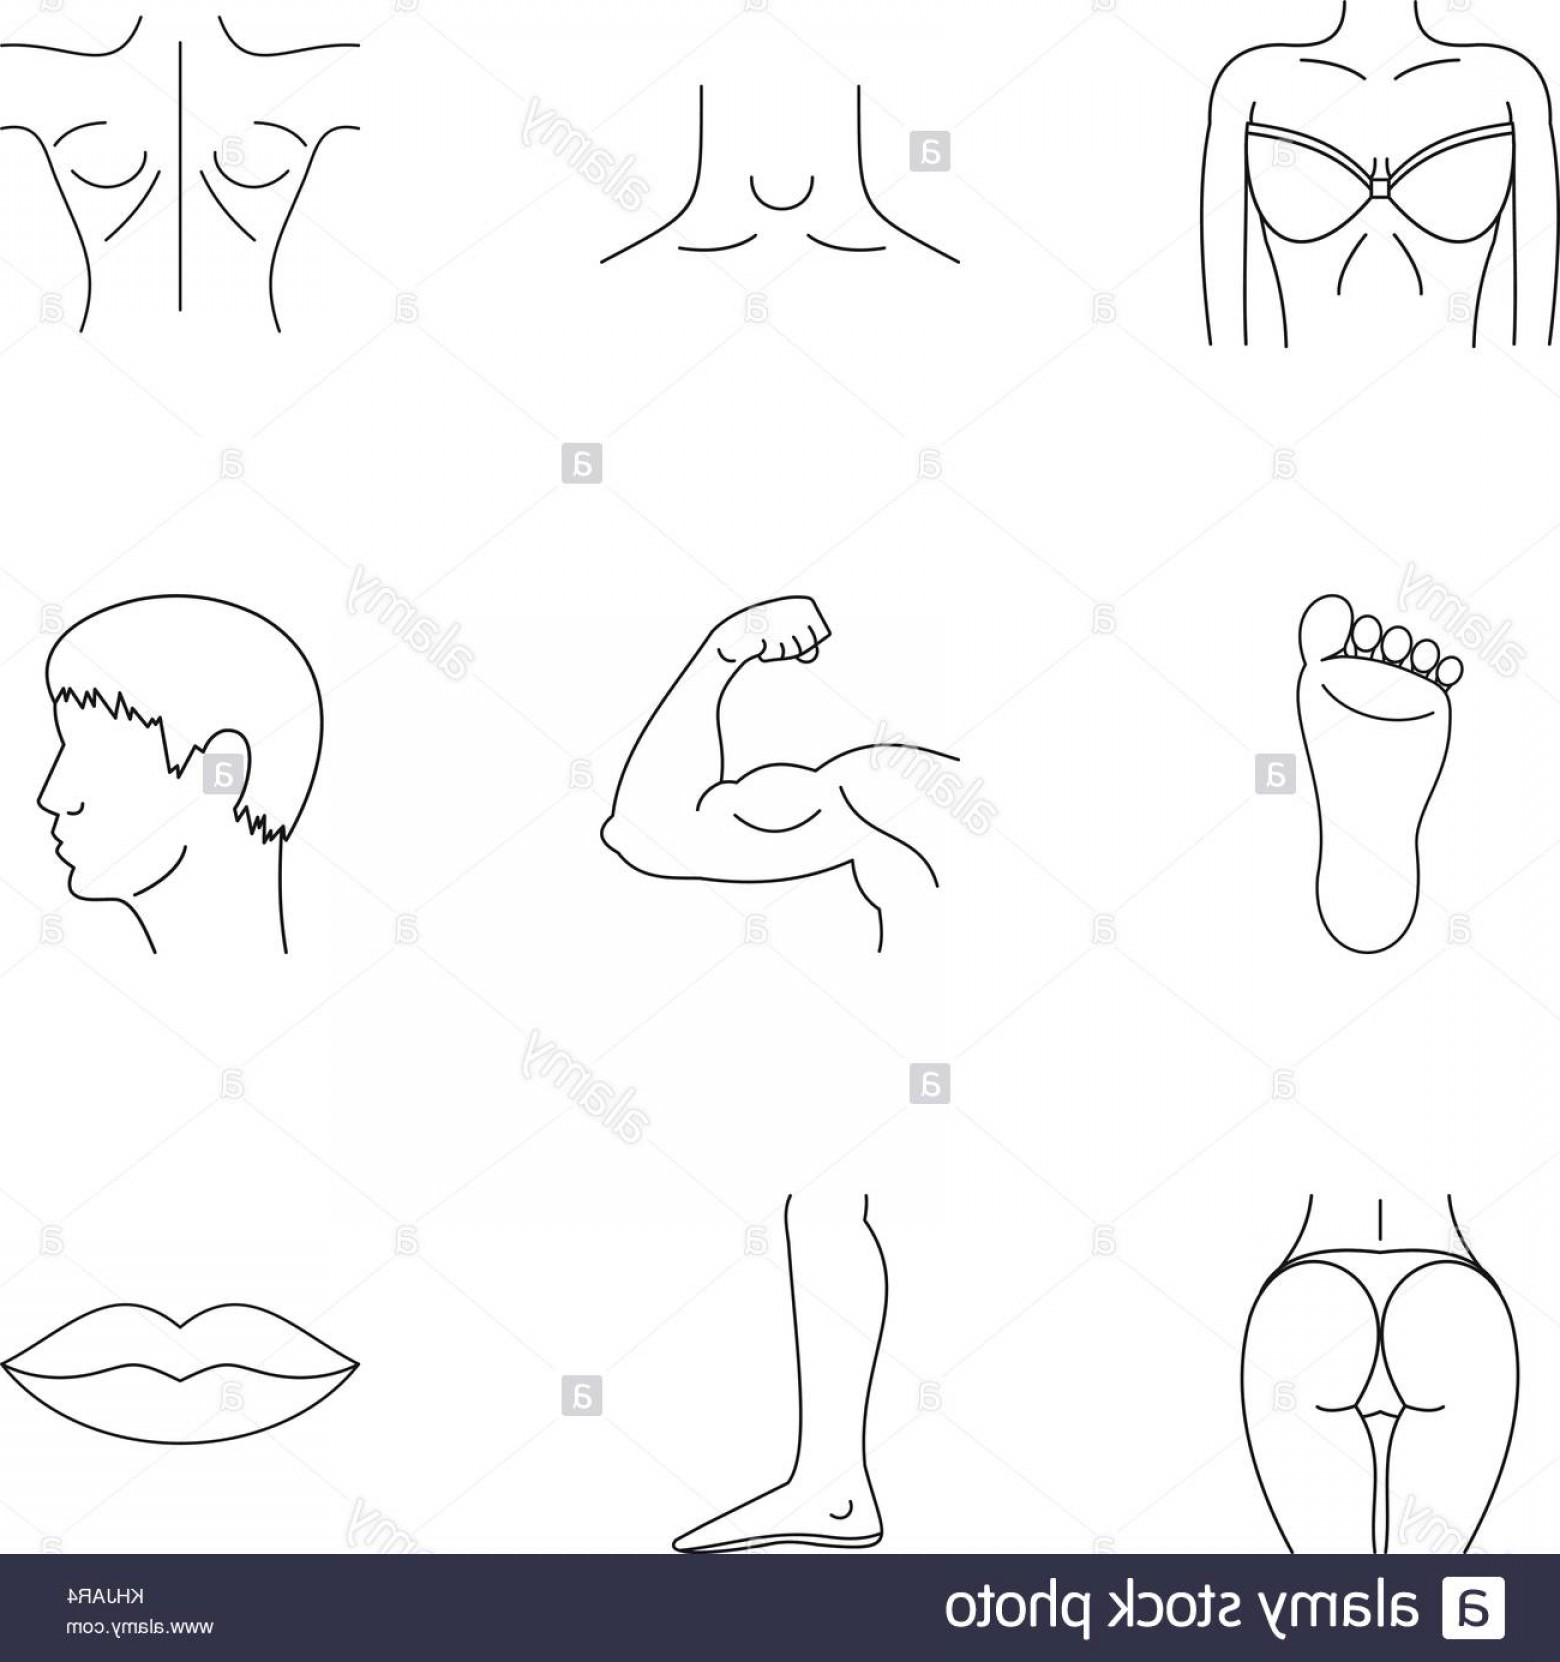 Human Body Outline Vector: Stock Image Human Body Icons Set Outline Style